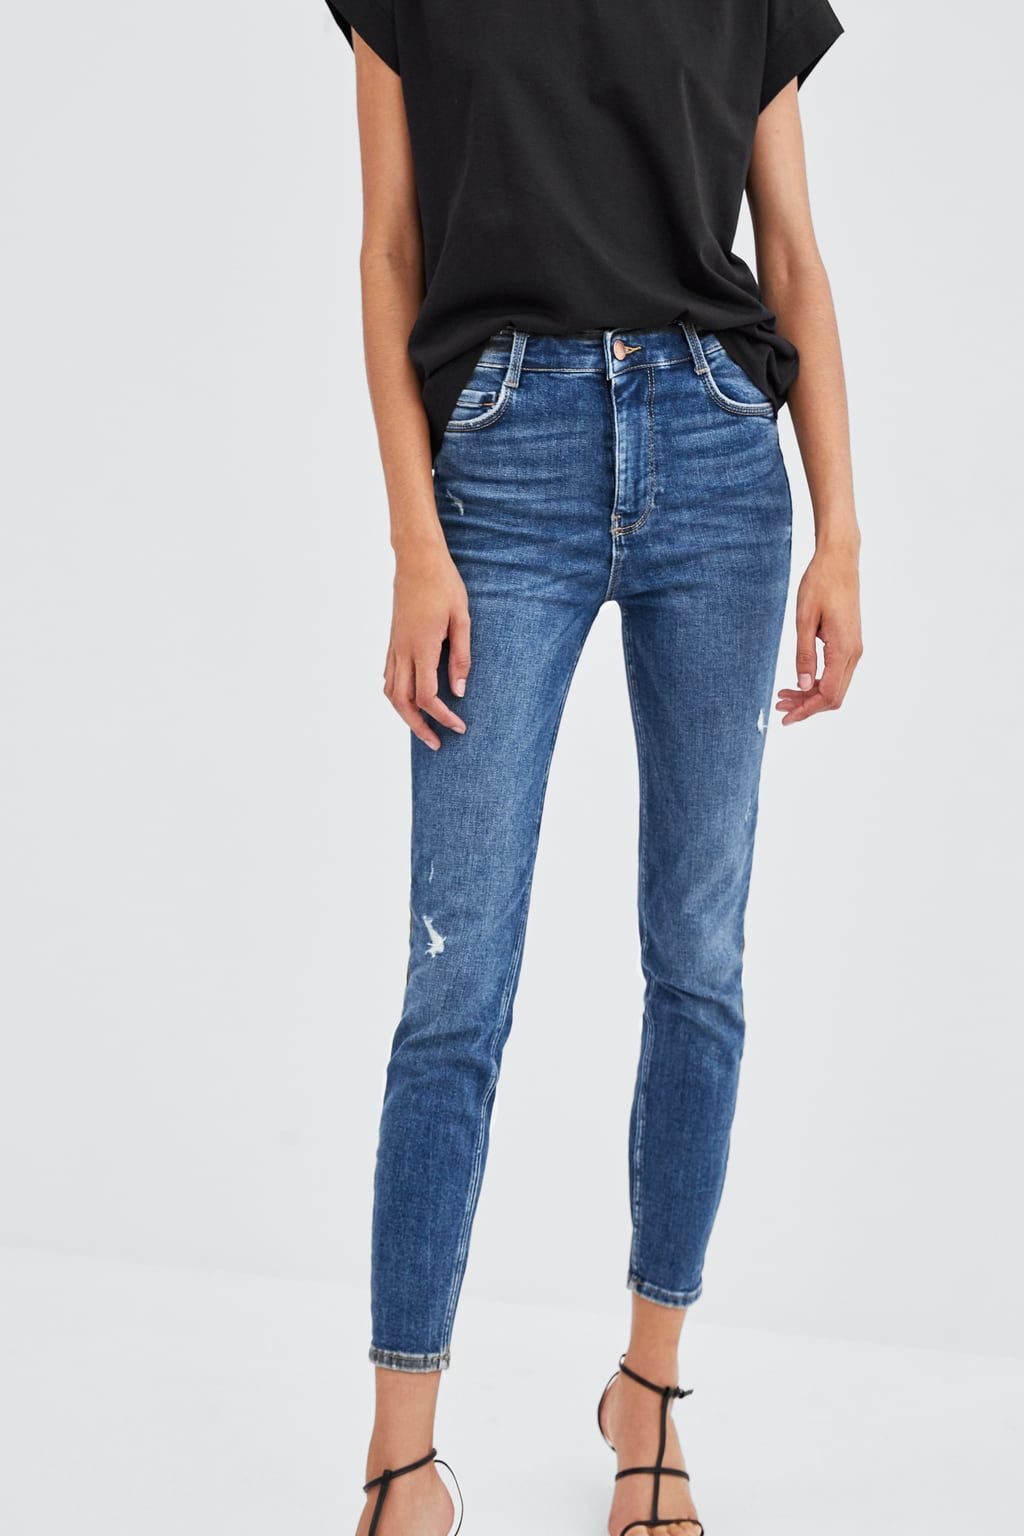 29bd1717 Image 3 of RIPPED VINTAGE HI-RISE JEGGINGS from Zara | Fashion ...